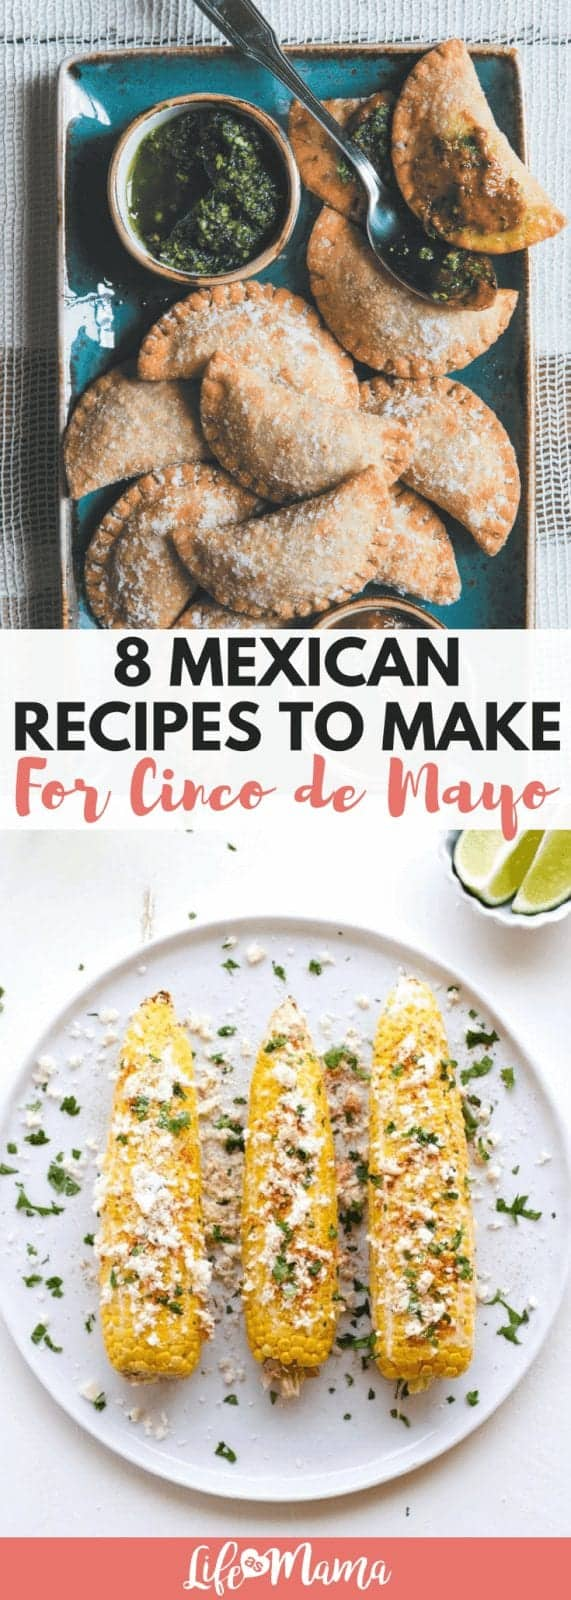 8 Mexican Recipes To Make For Cinco de Mayo